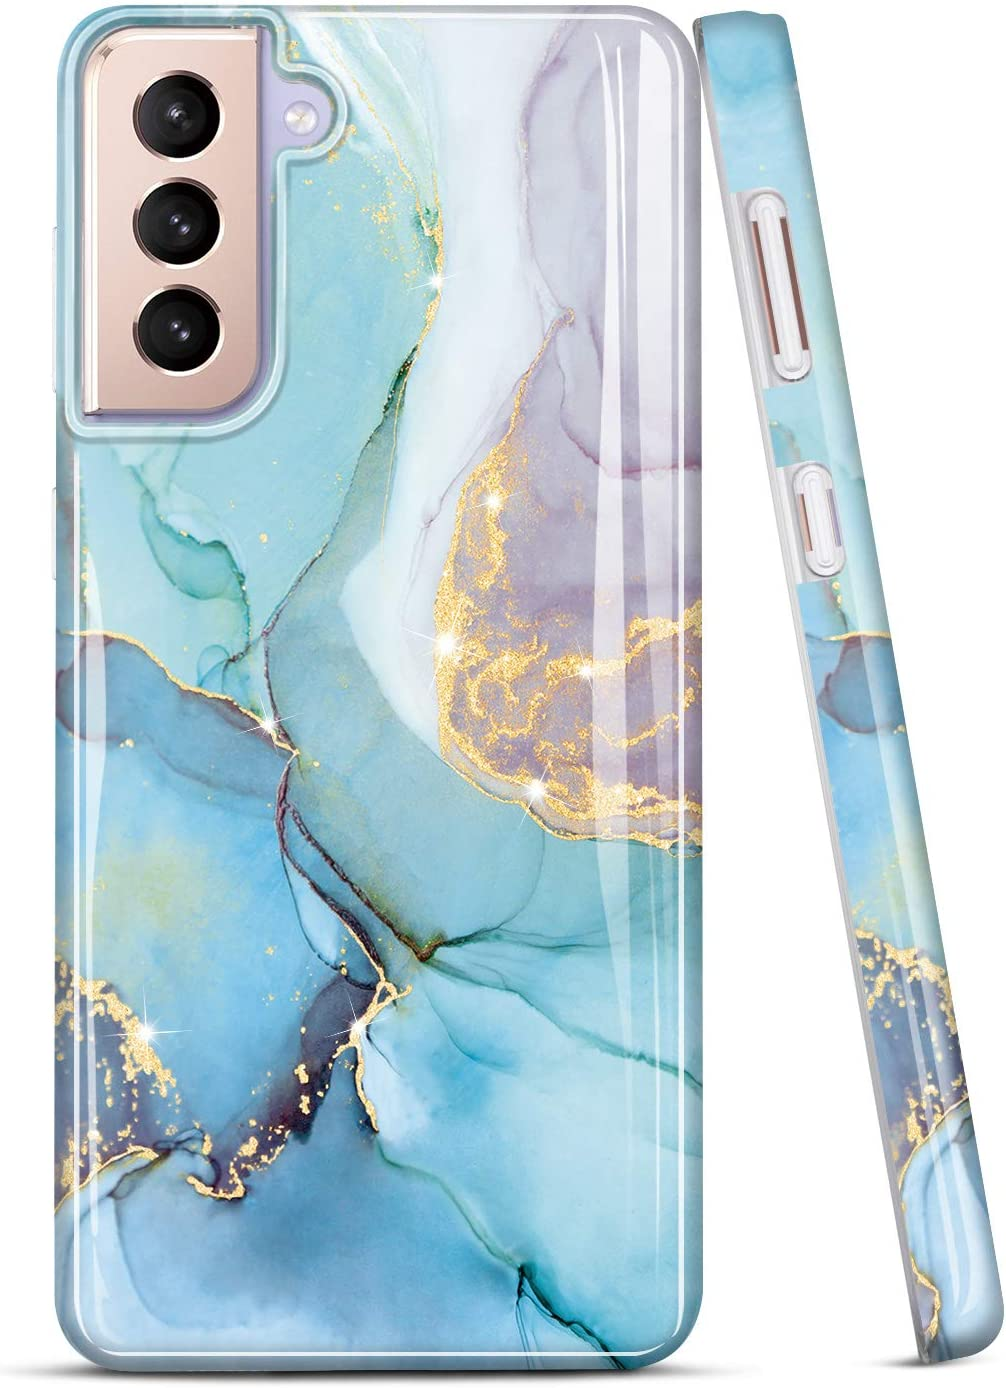 JIAXIUFEN Galaxy S21 Case Gold Sparkle Glitter Marble Slim Shockproof TPU Soft Rubber Silicone Cover Phone Case for Samsung Galaxy S21 5G 6.2 inch 2021 Mint Purple